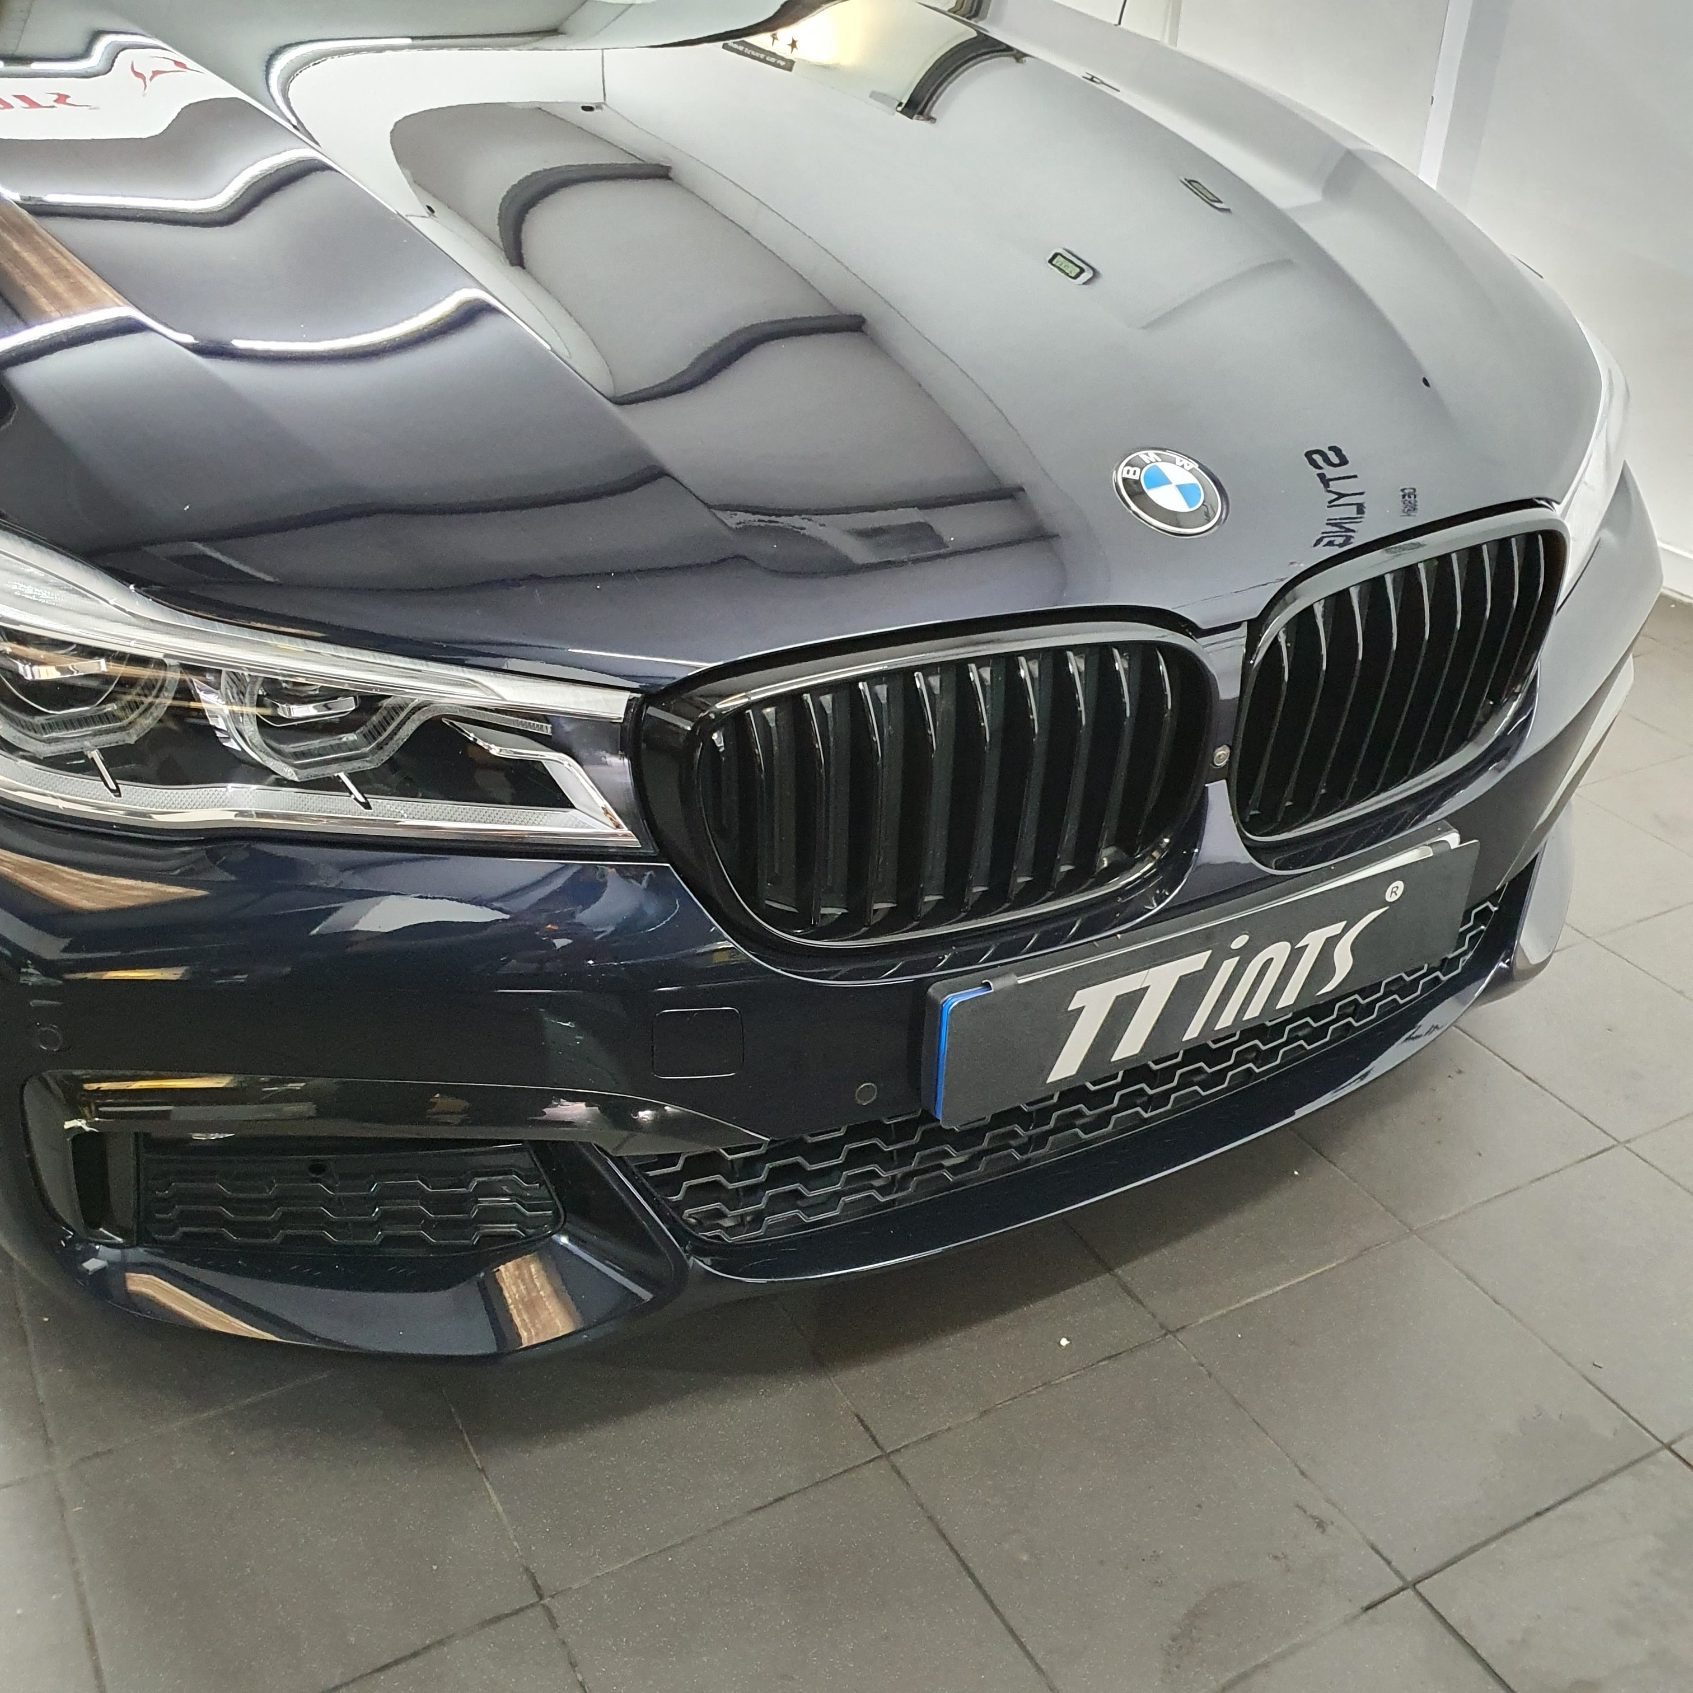 BMW Grill Wrap - after